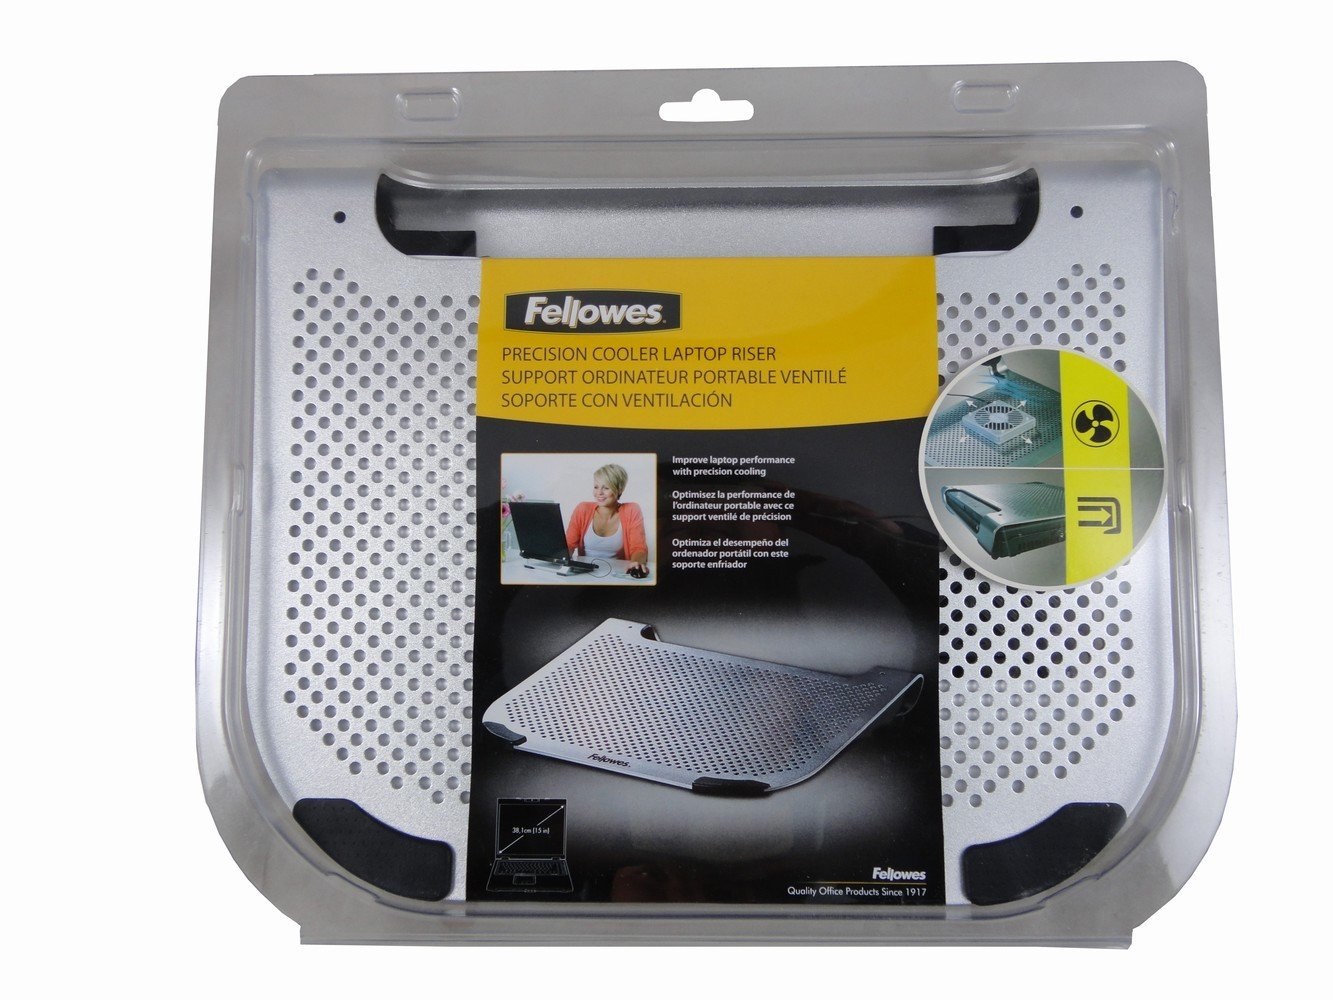 Amazon.com: Fellowes Precision Cooler Laptop Riser: Computers & Accessories